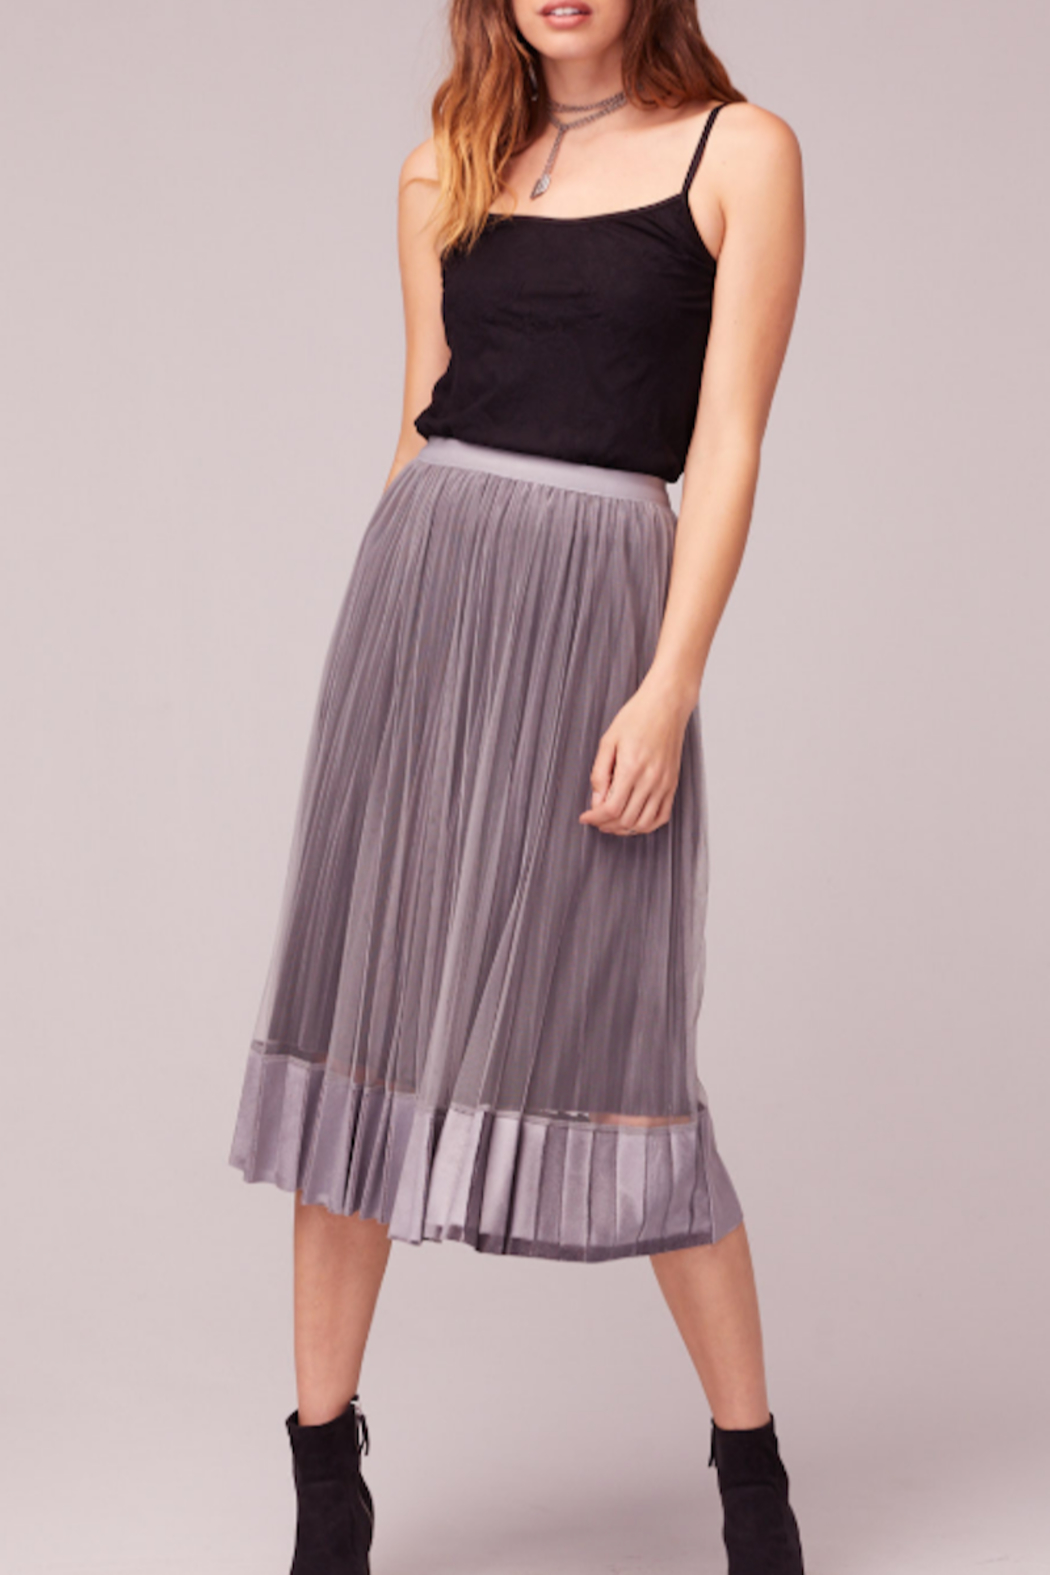 Band Of Gypsies Tiny Dancer Skirt - Front Cropped Image